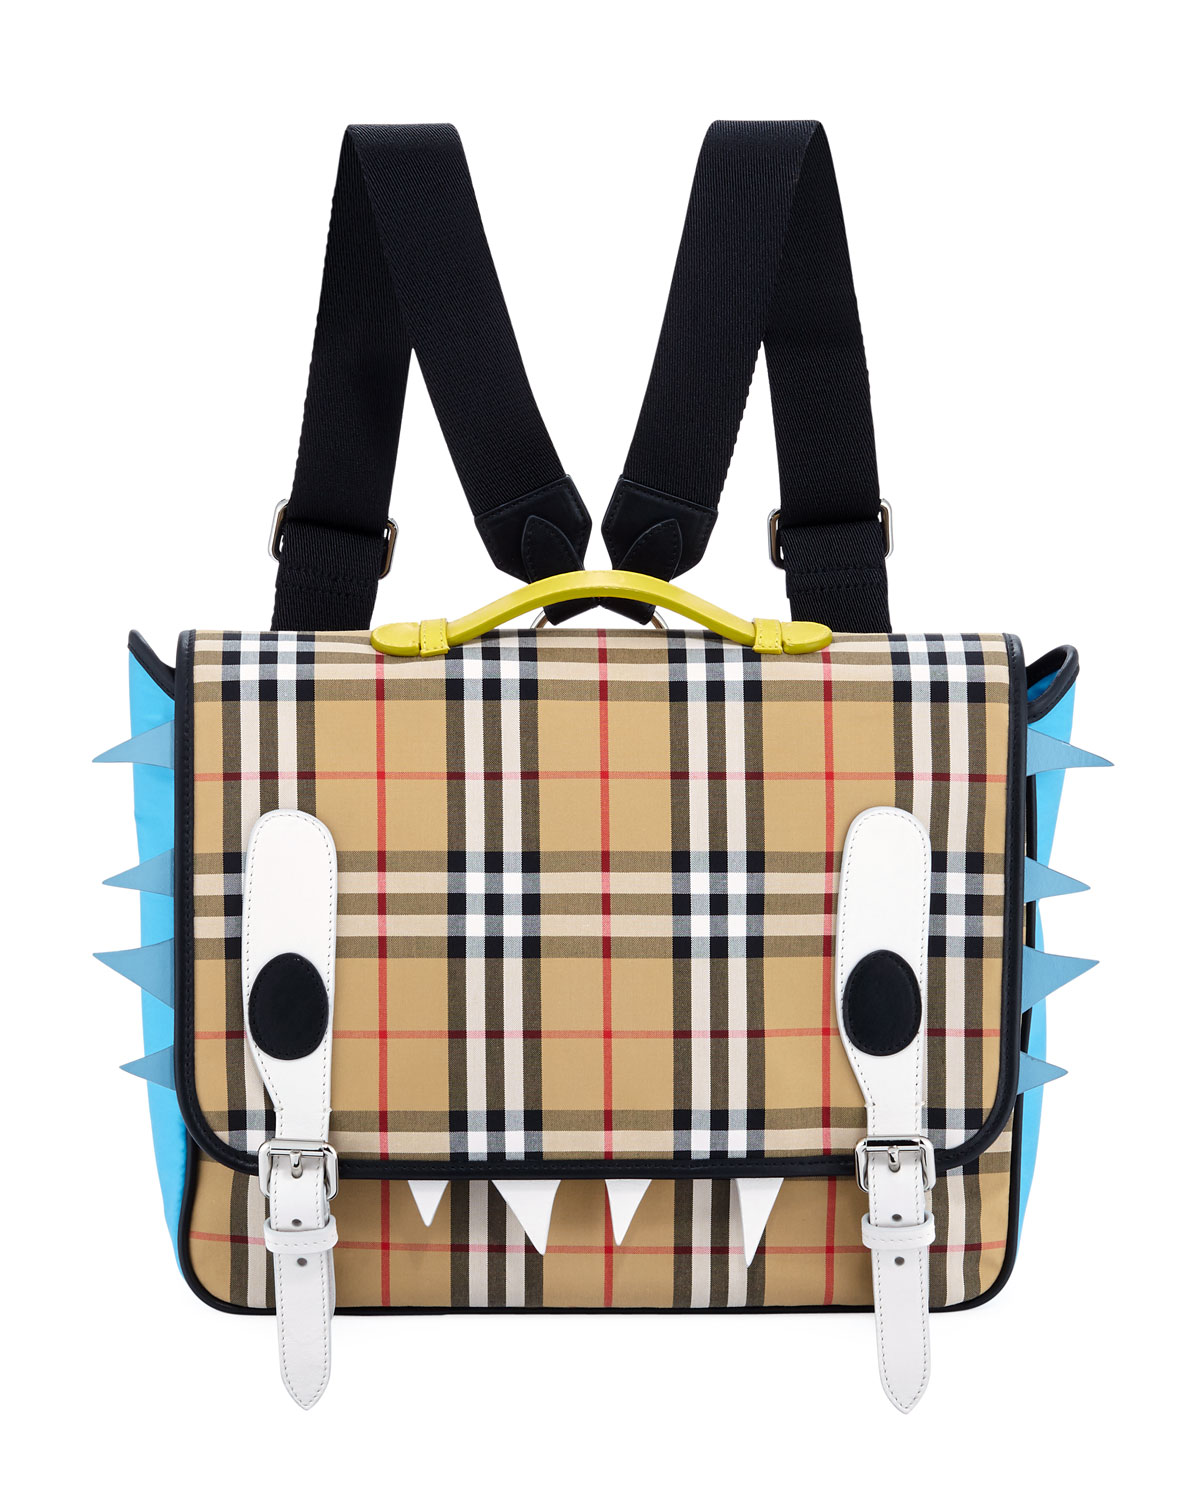 Burberry Kids Spike Canvas Check Backpack Neiman Marcus